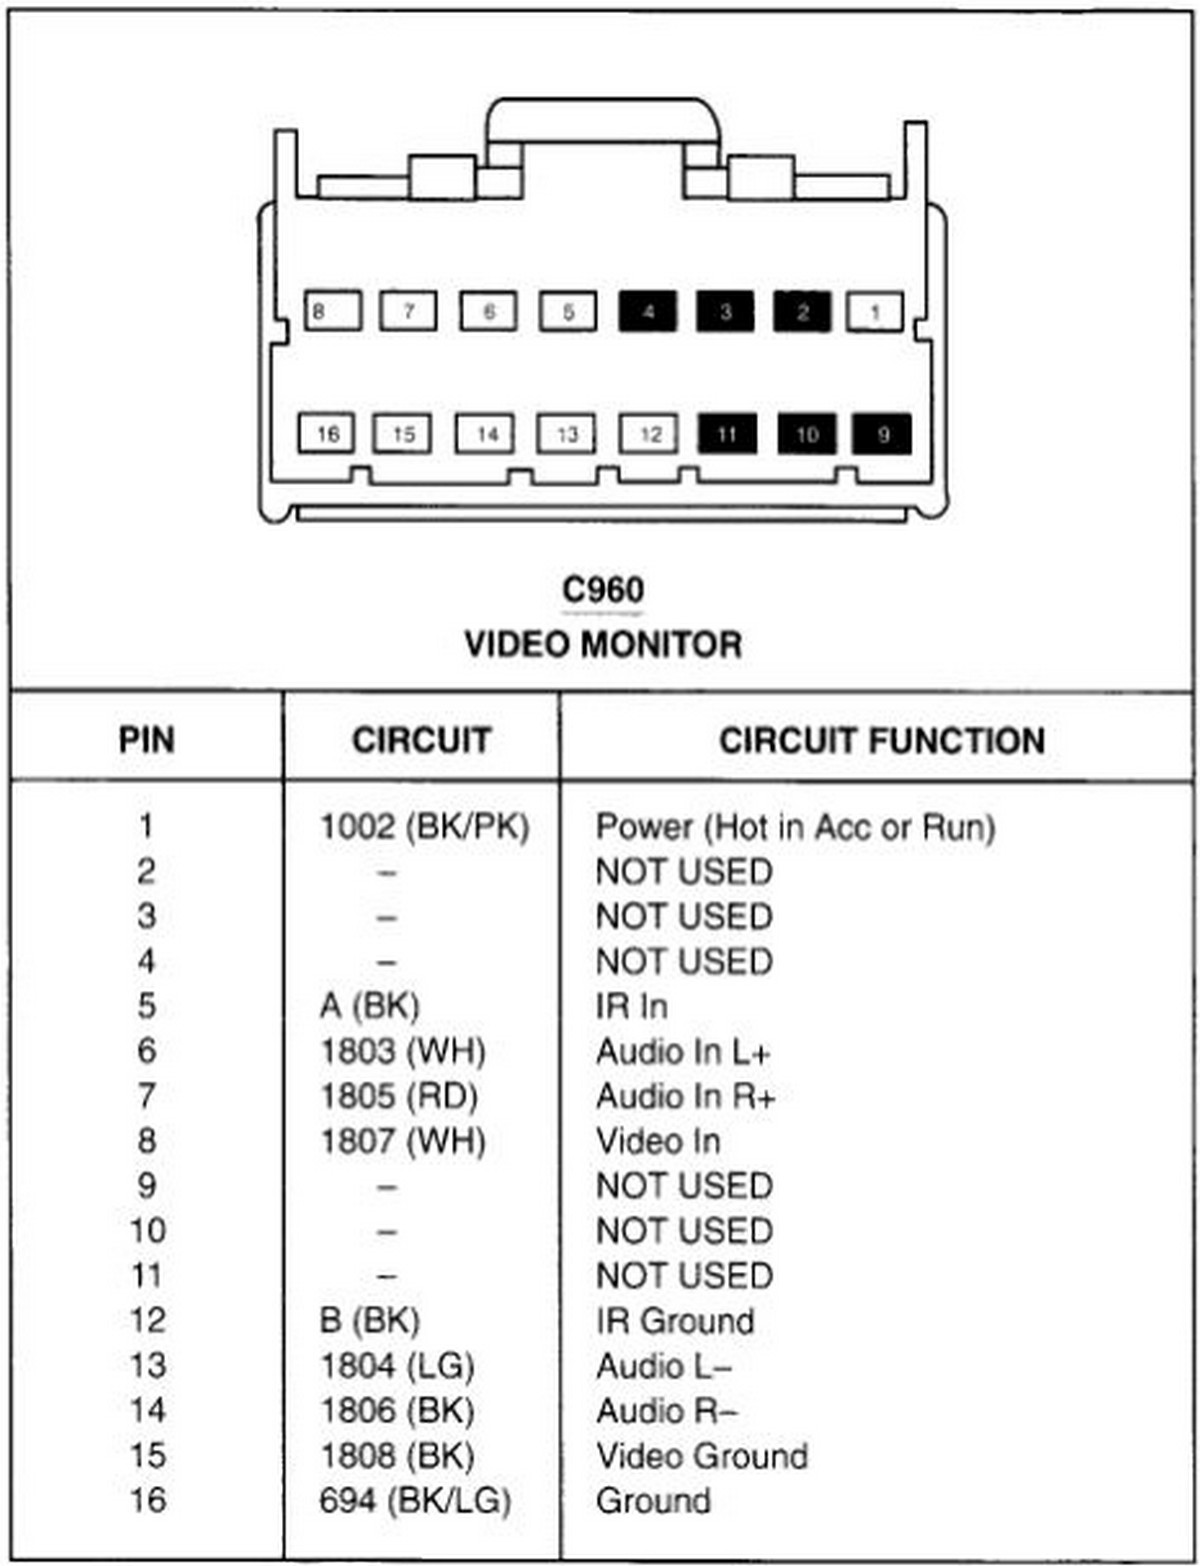 Ford Cd Mustang Wiring Diagram Connector Pinout as well Ford Cd Wiring Connector furthermore Wiring Diagram Jeep Grand Cherokee Car Stereo Radio In likewise Maxresdefault in addition Mwire. on 1996 ford f 150 radio wiring diagram